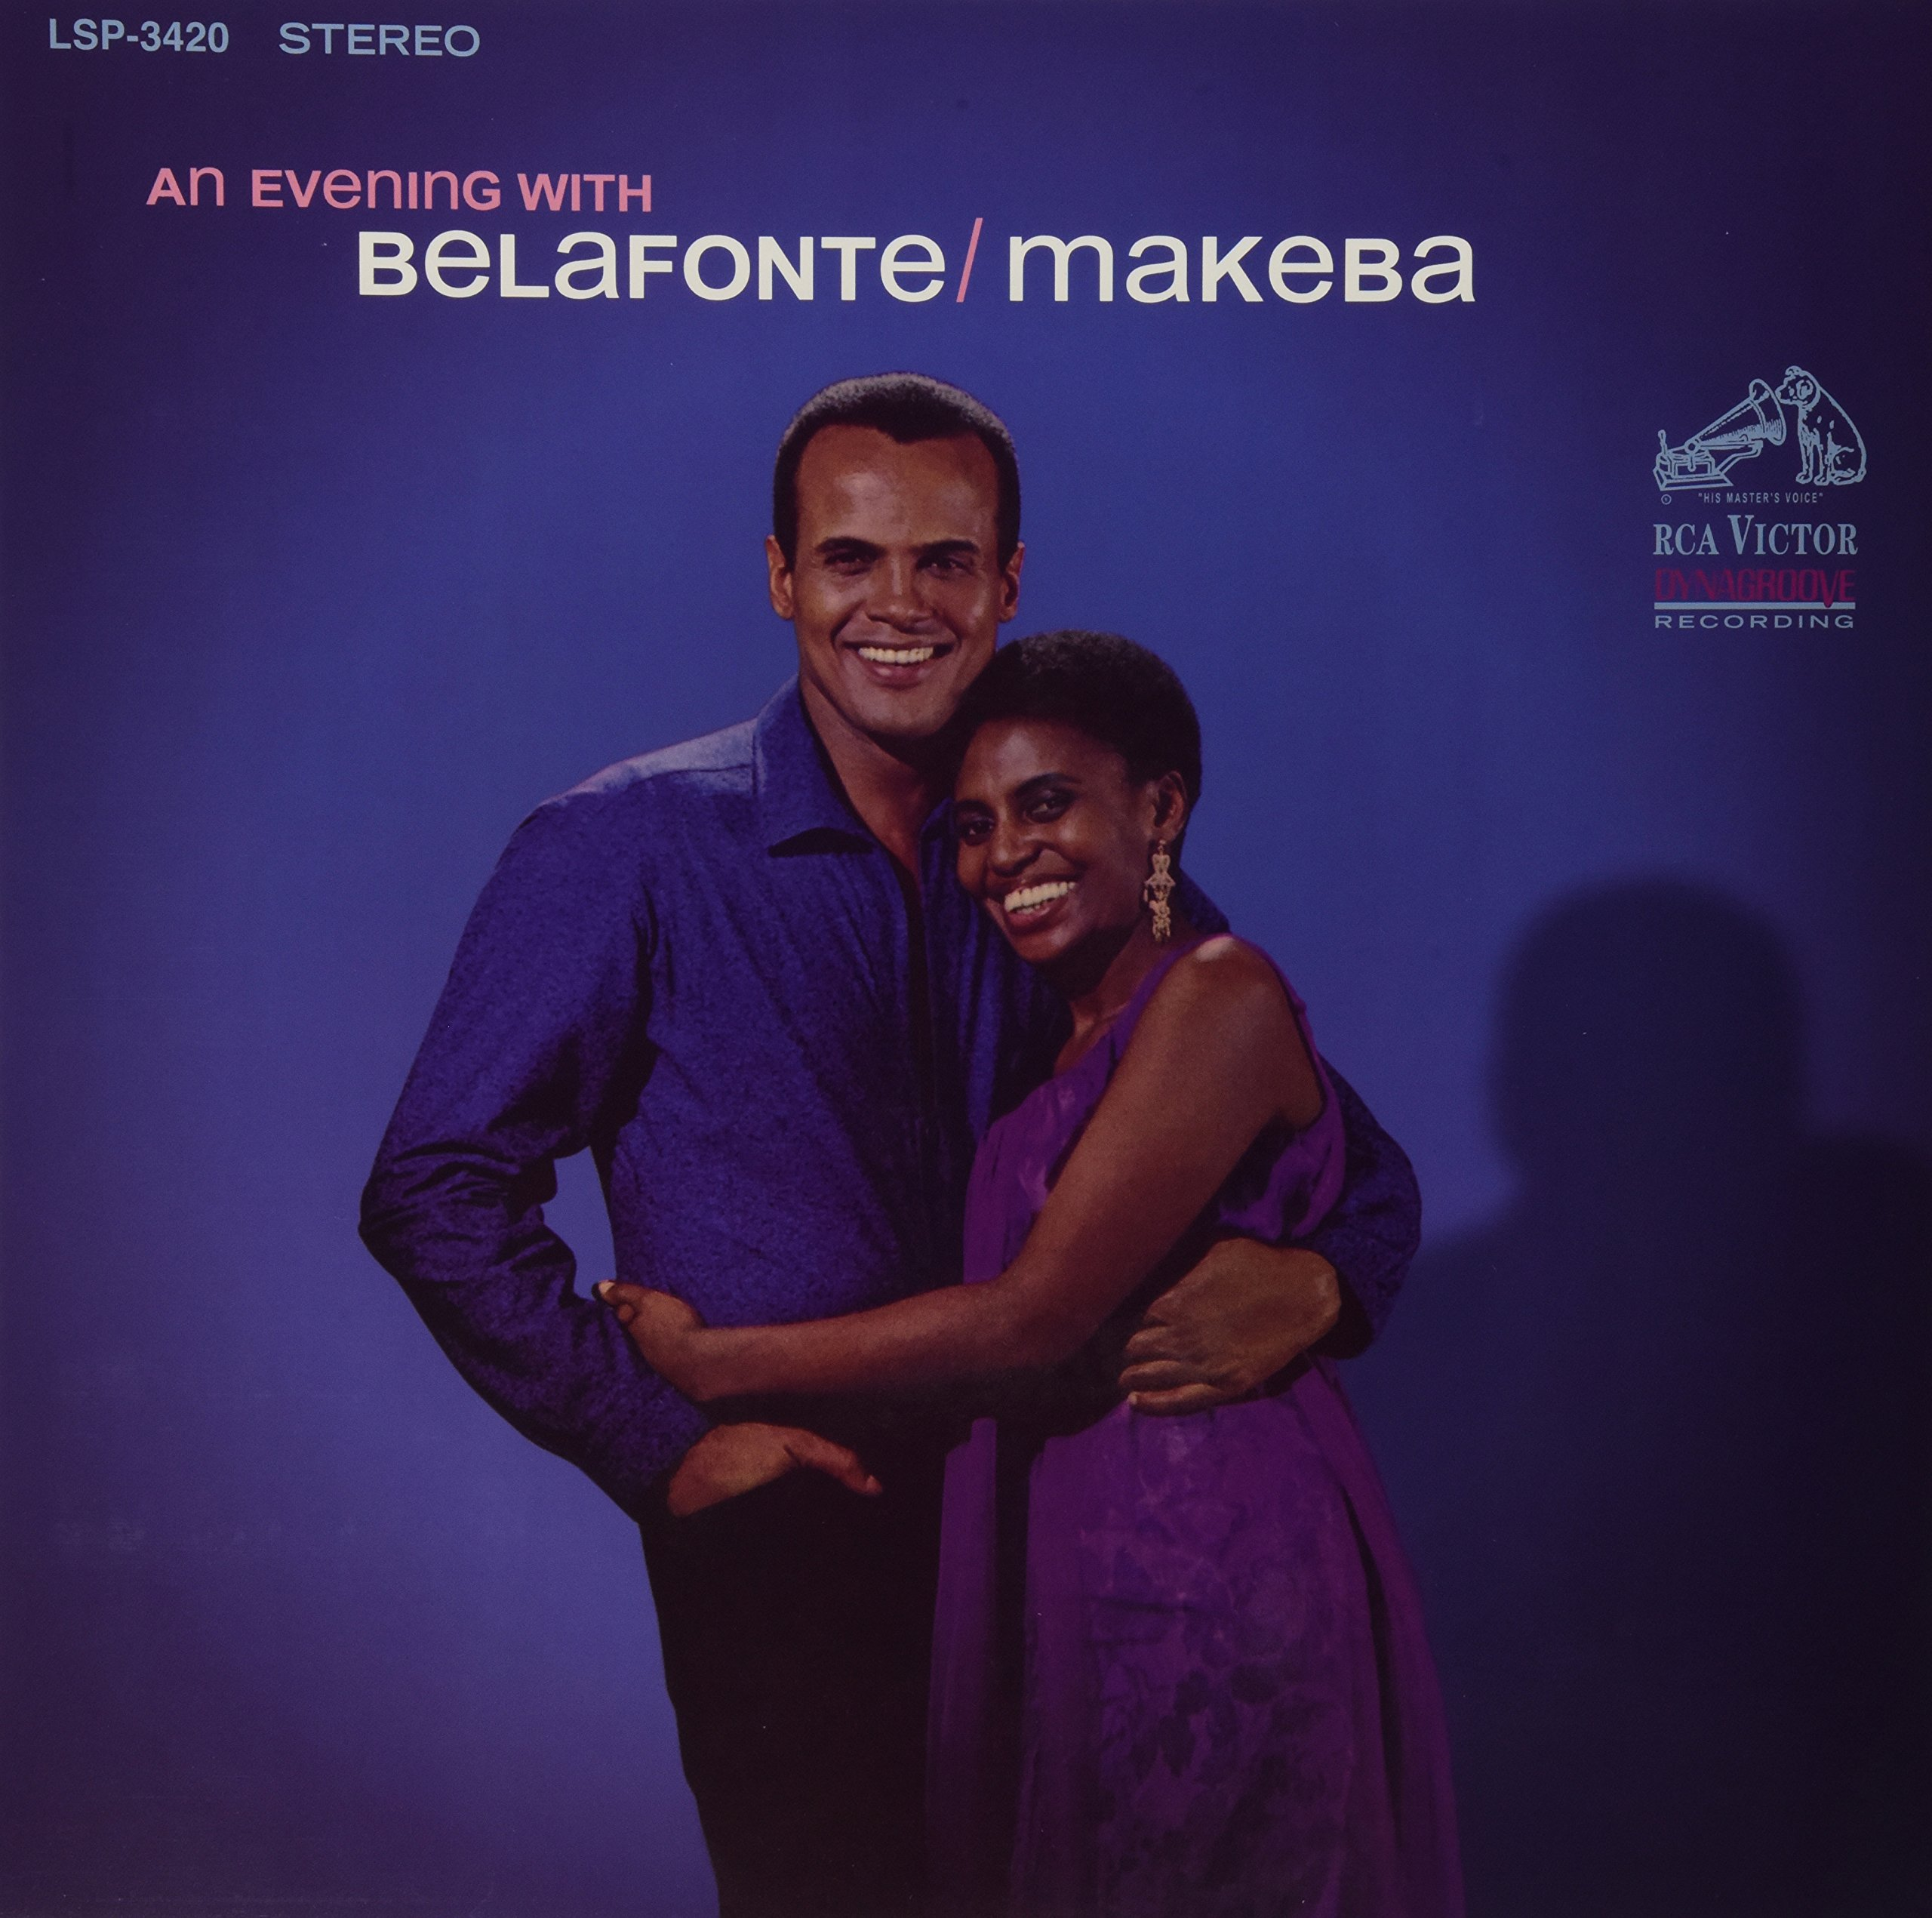 An Evening with Belafonte and Makeba by VINYL